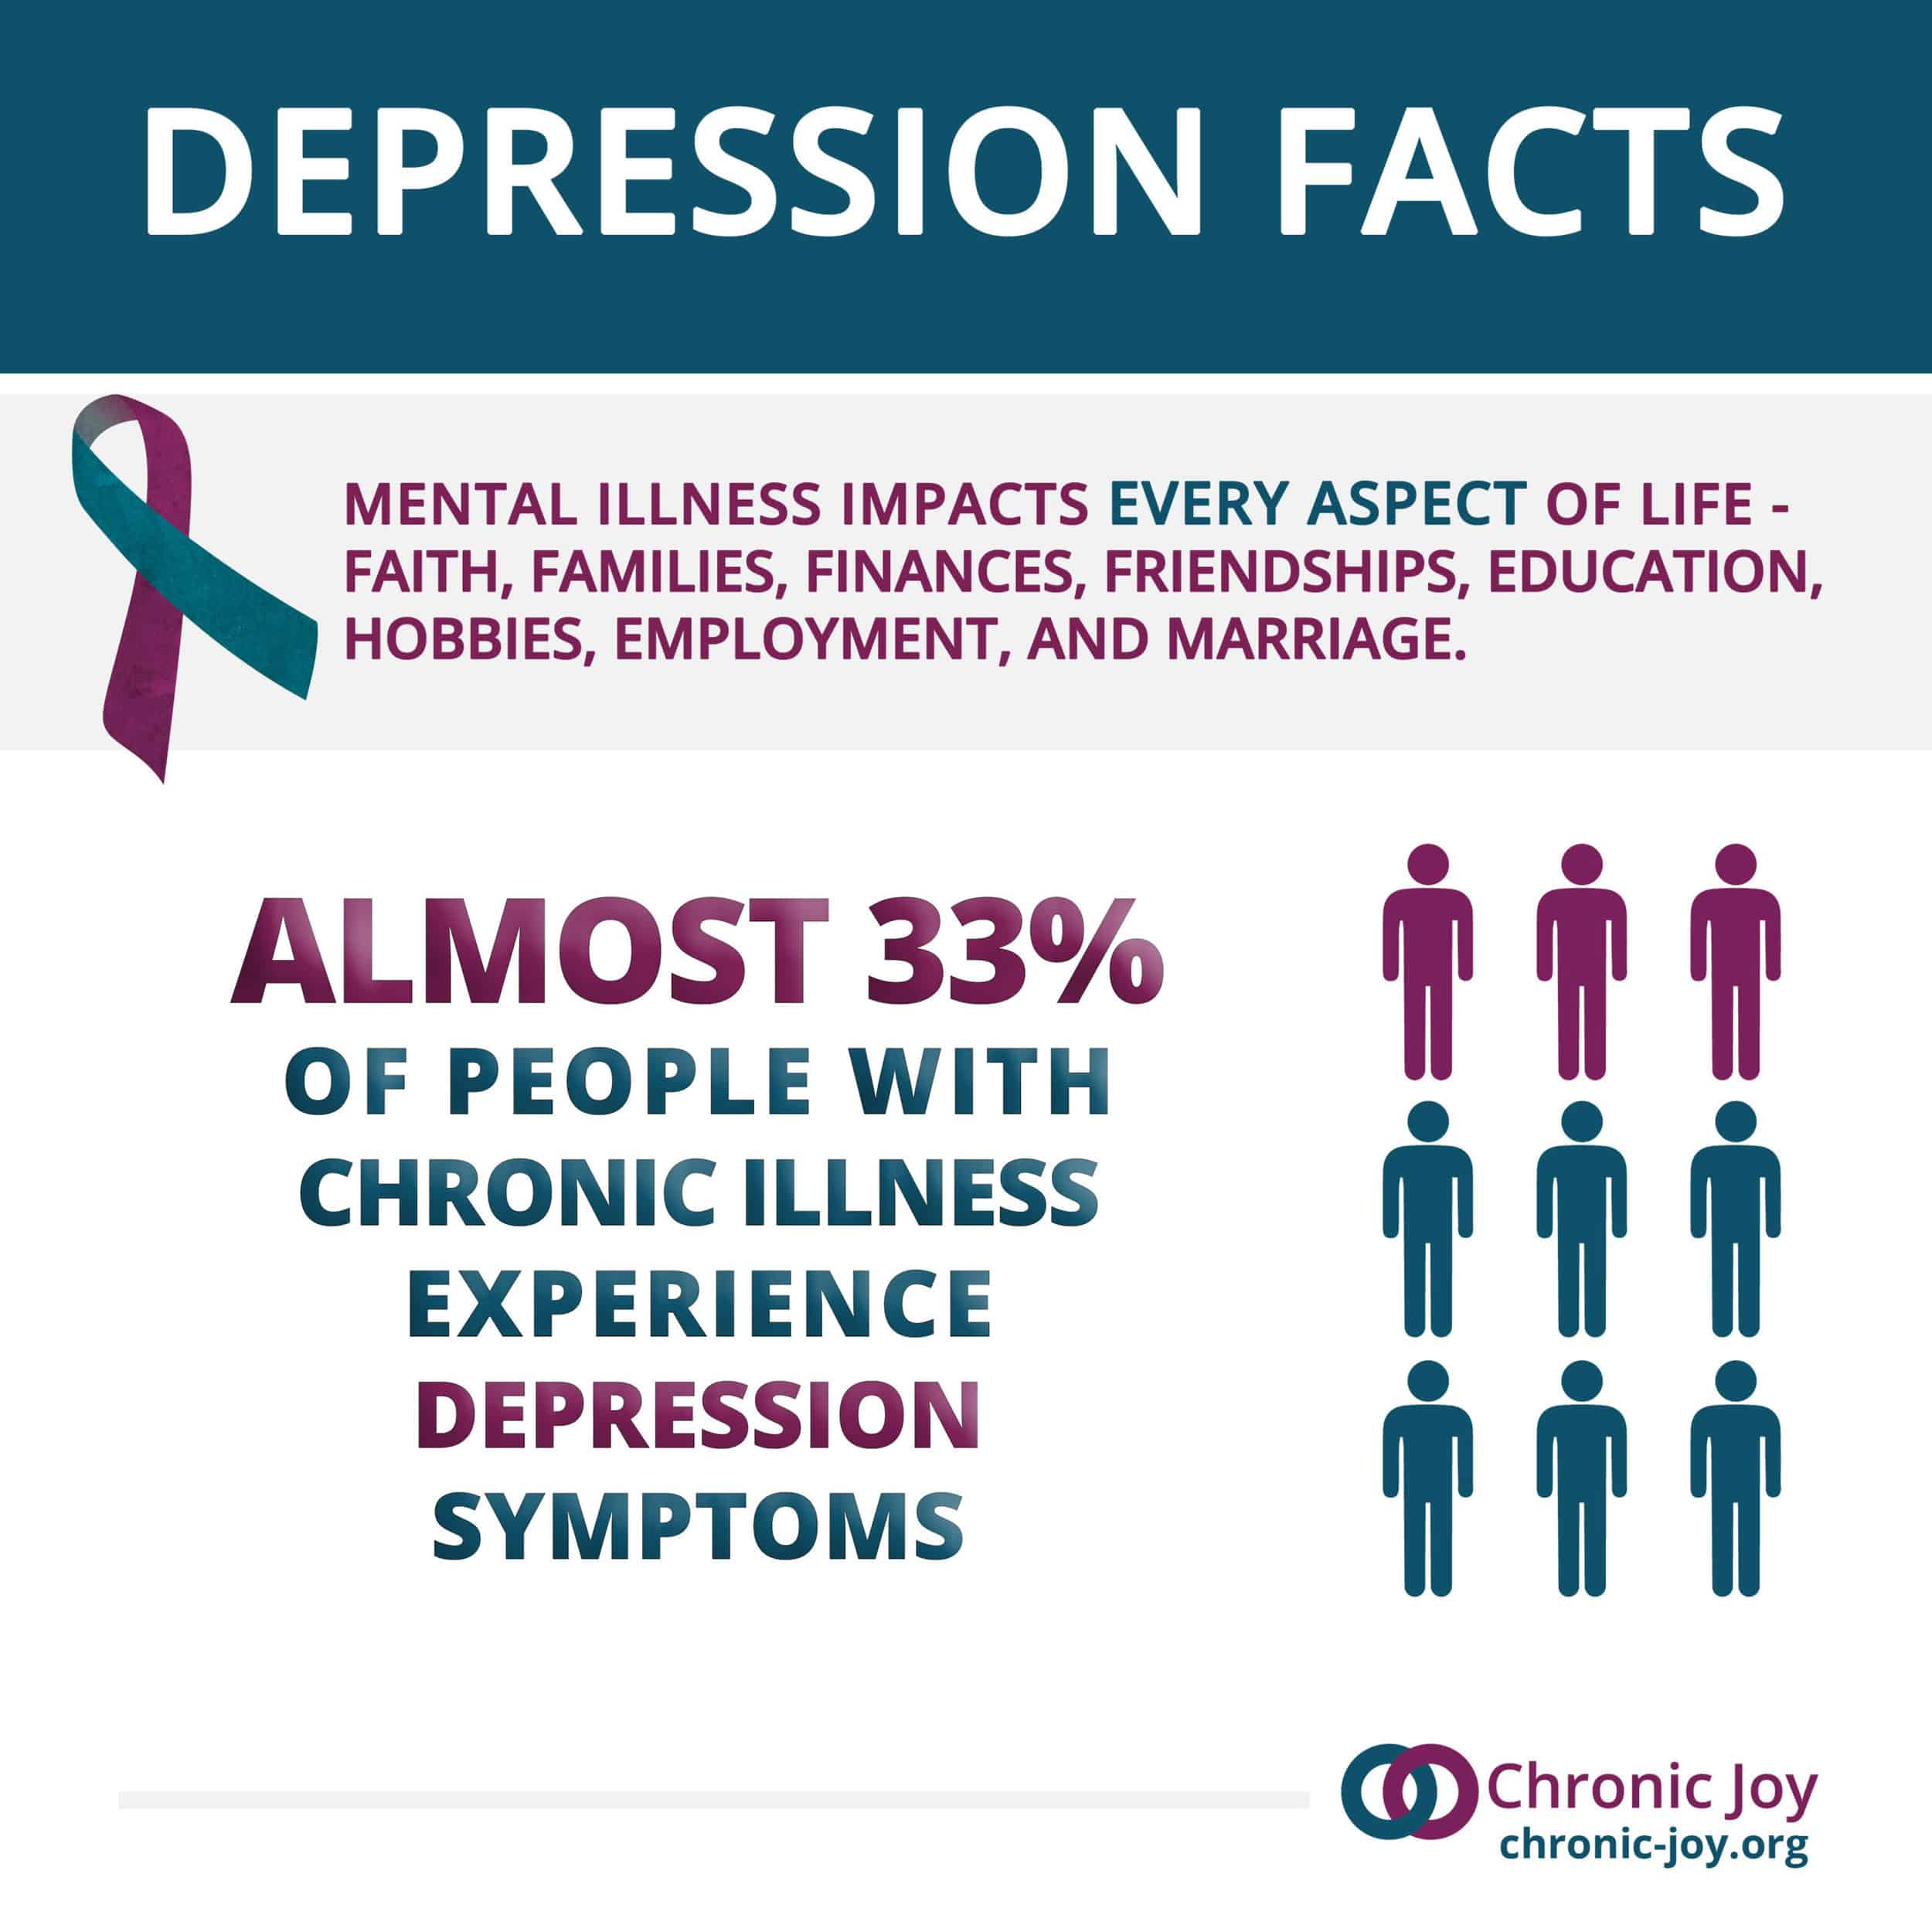 Almost 33% of people with chronic illness experience depression.